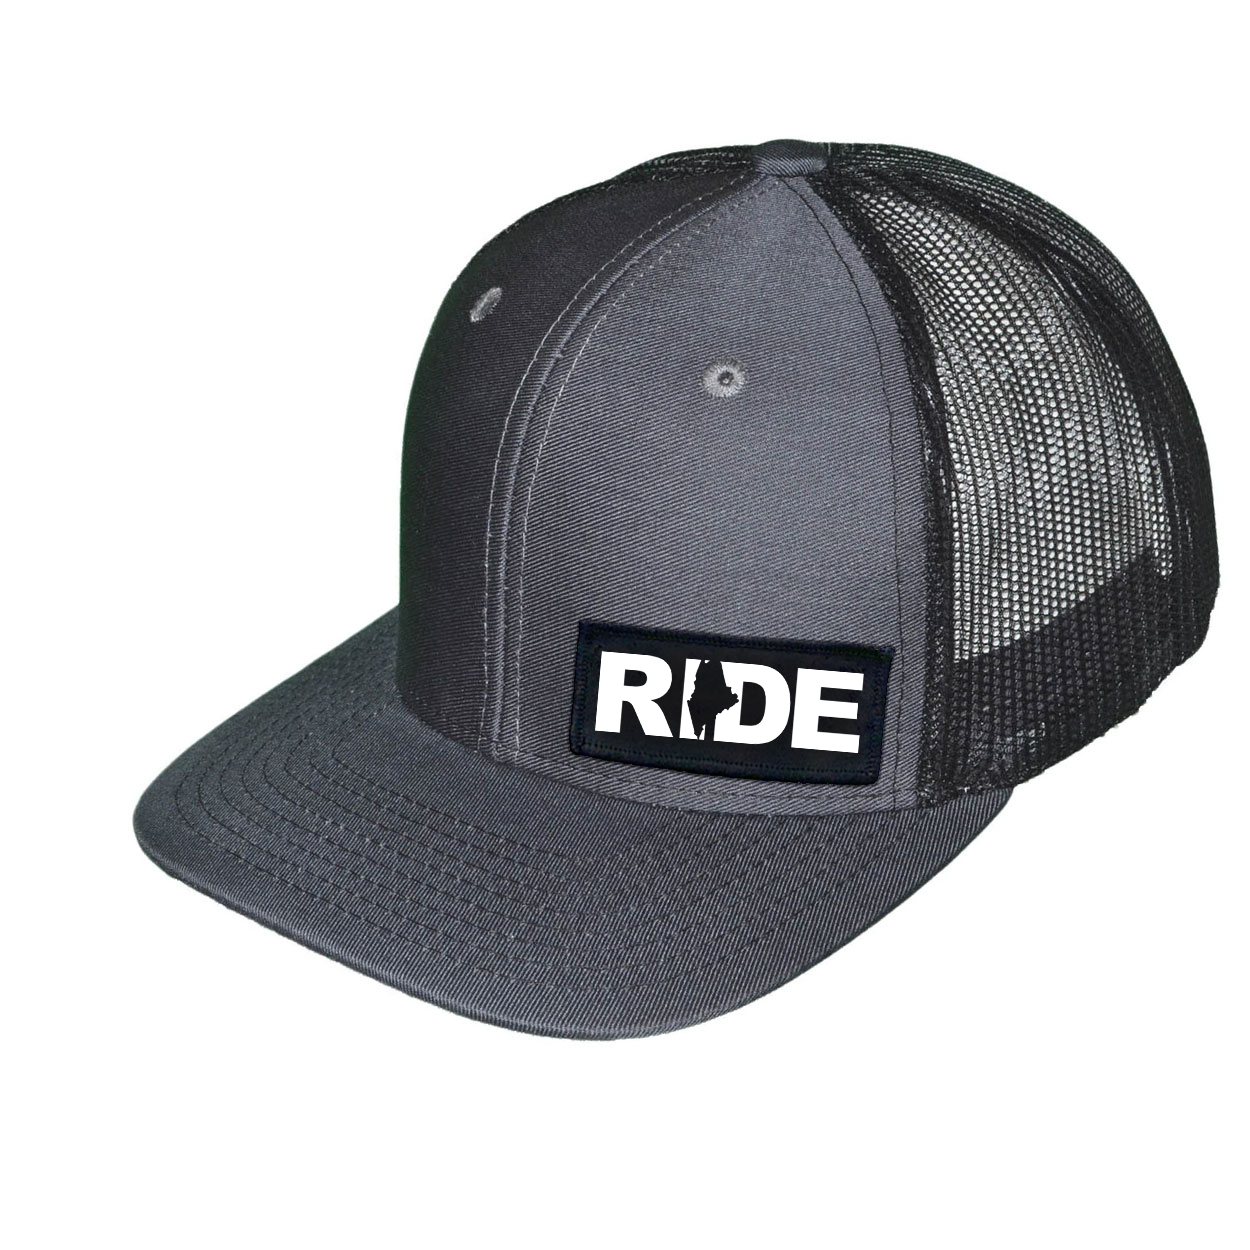 Ride Maine Night Out Woven Patch Snapback Trucker Hat Dark Gray/Black (White Logo)